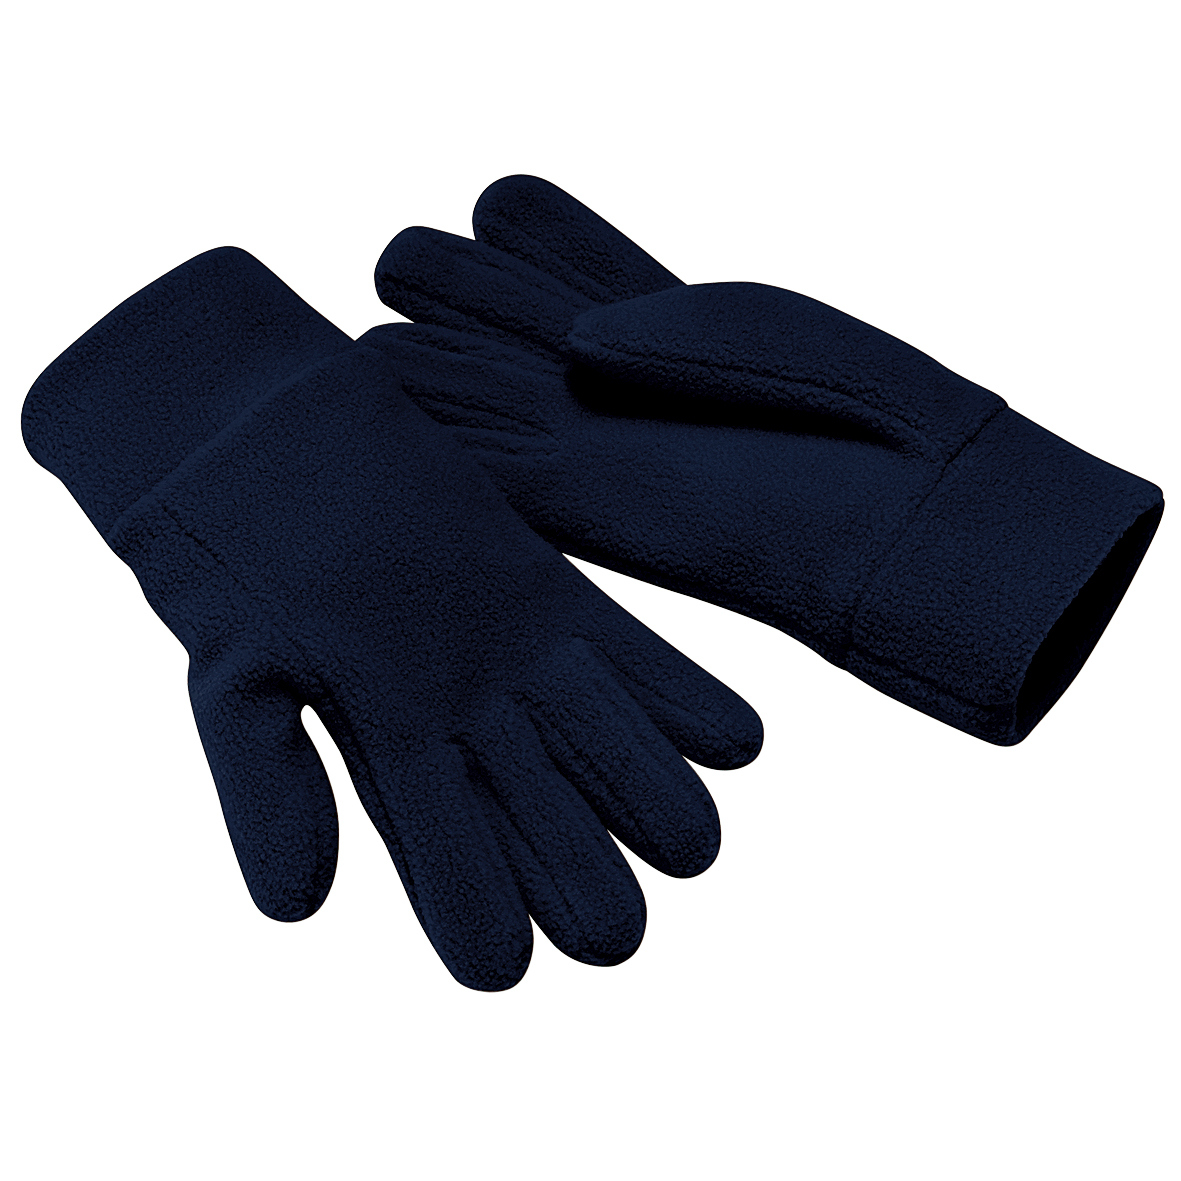 RW236 Beechfield Unisex Suprafleece Anti-Pilling Alpine Winter Gloves